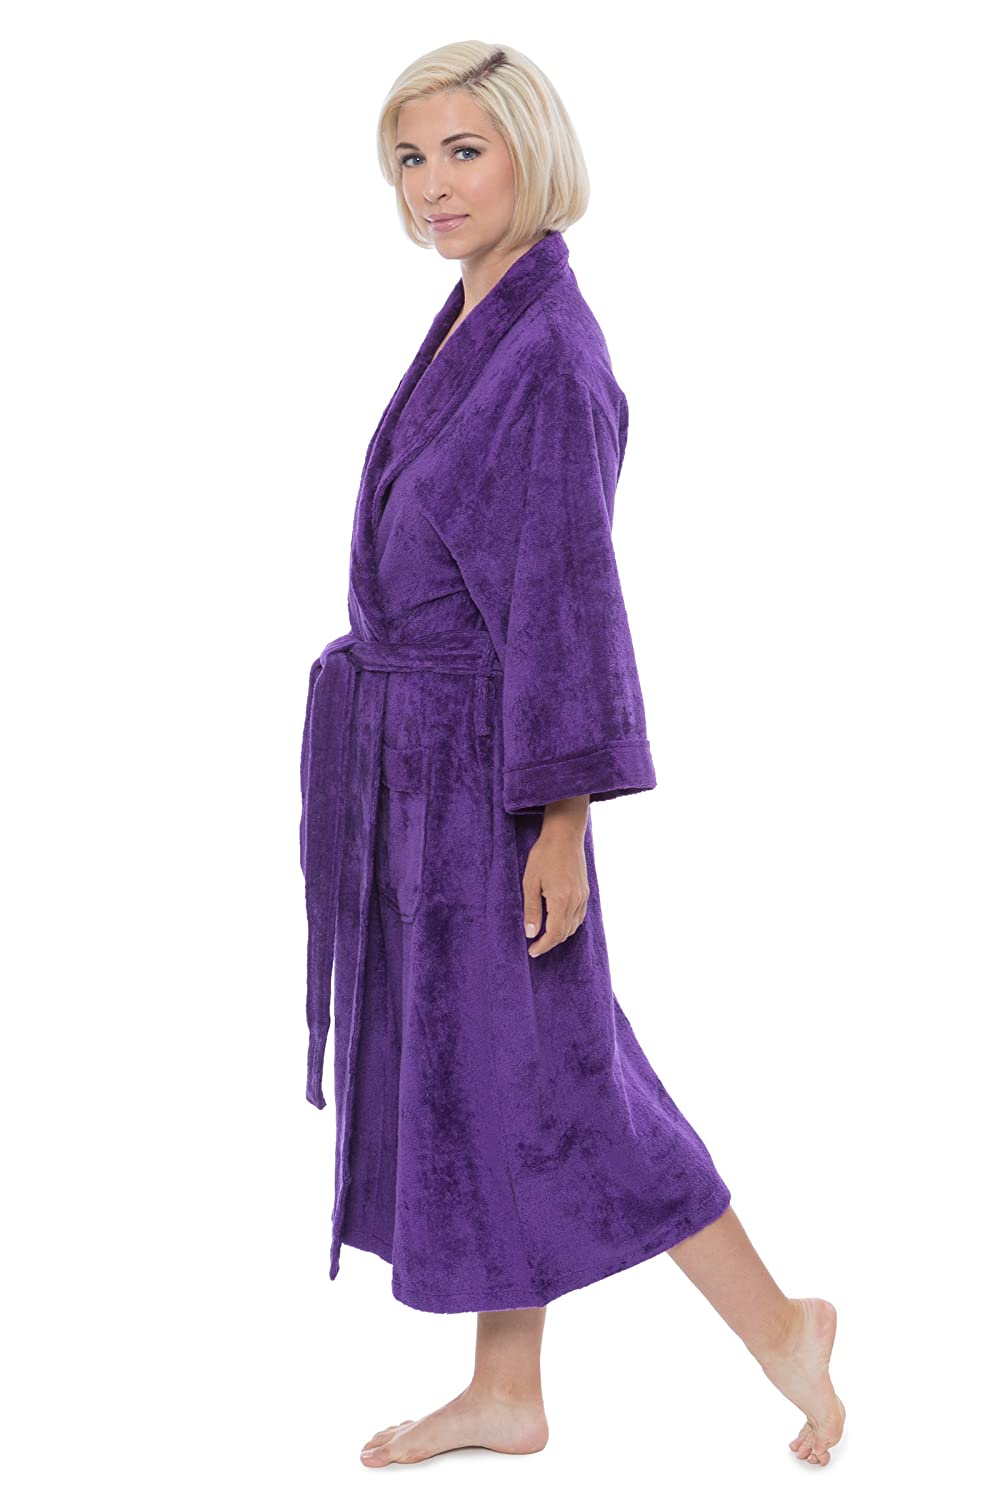 Women s Terry Cloth Bath Robe - Luxury Comfy Robes by Texere (Sitkimono) at  Amazon Women s Clothing store  3a82ea2fd